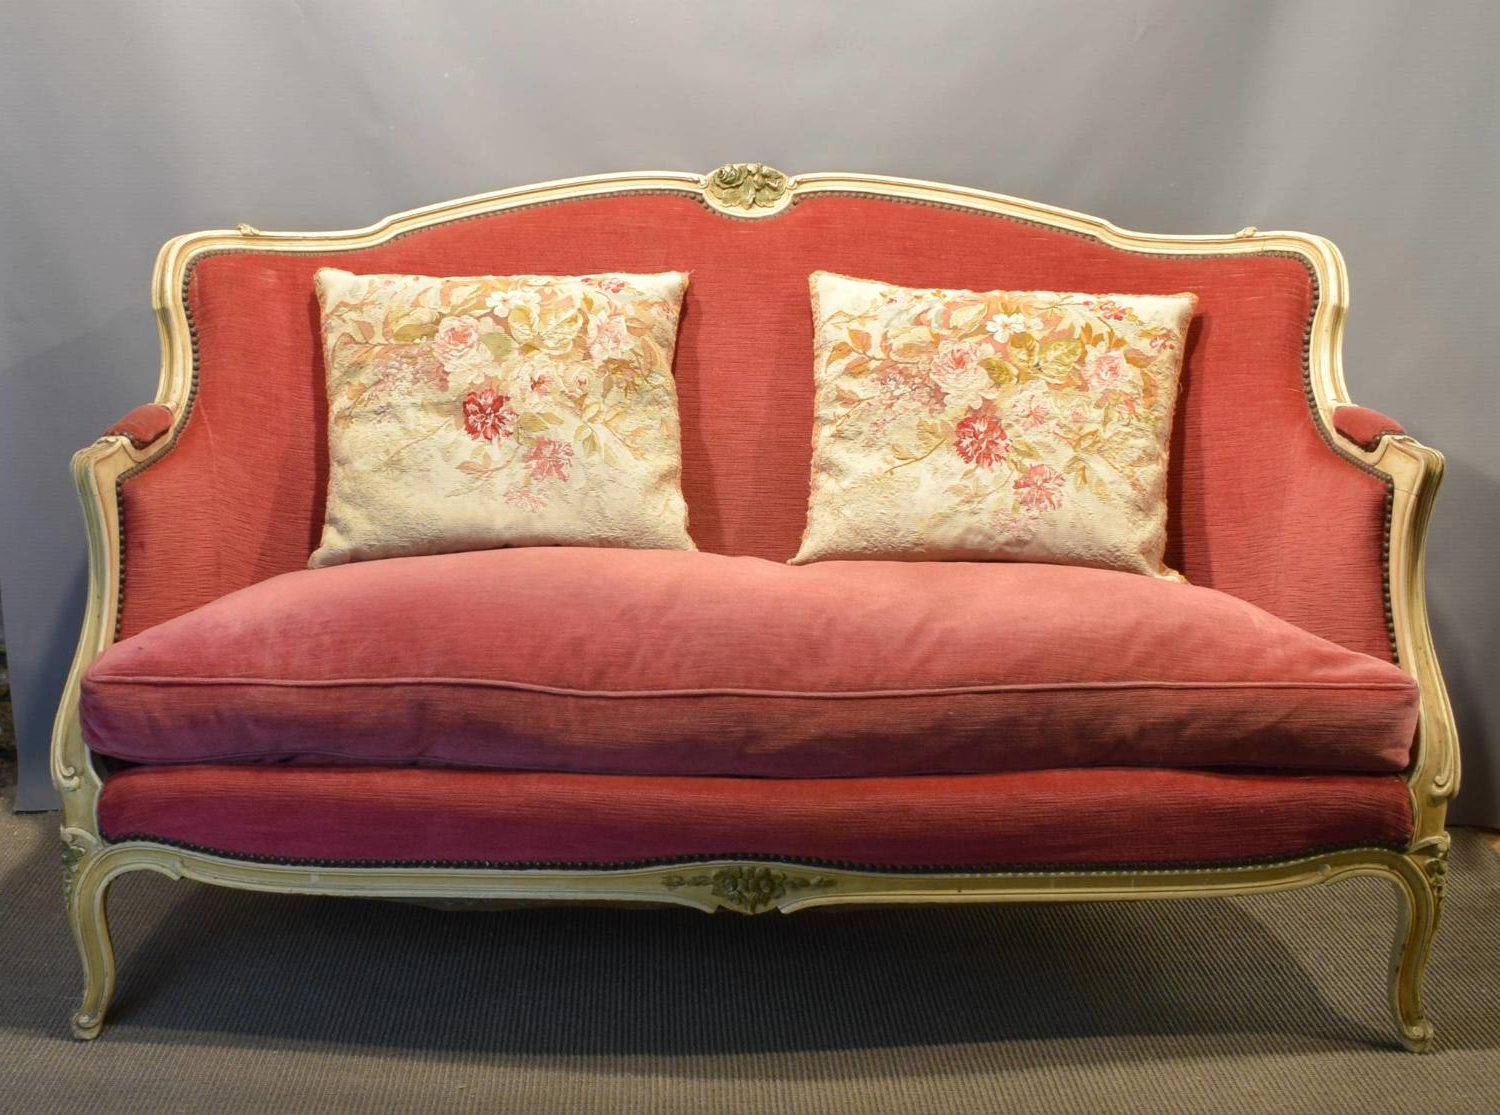 French Seamed Sectional Sofas In Velvet Inside Widely Used Vintage French Pink Velvet Sofa In Louis Xv Style In Furniture (View 19 of 25)